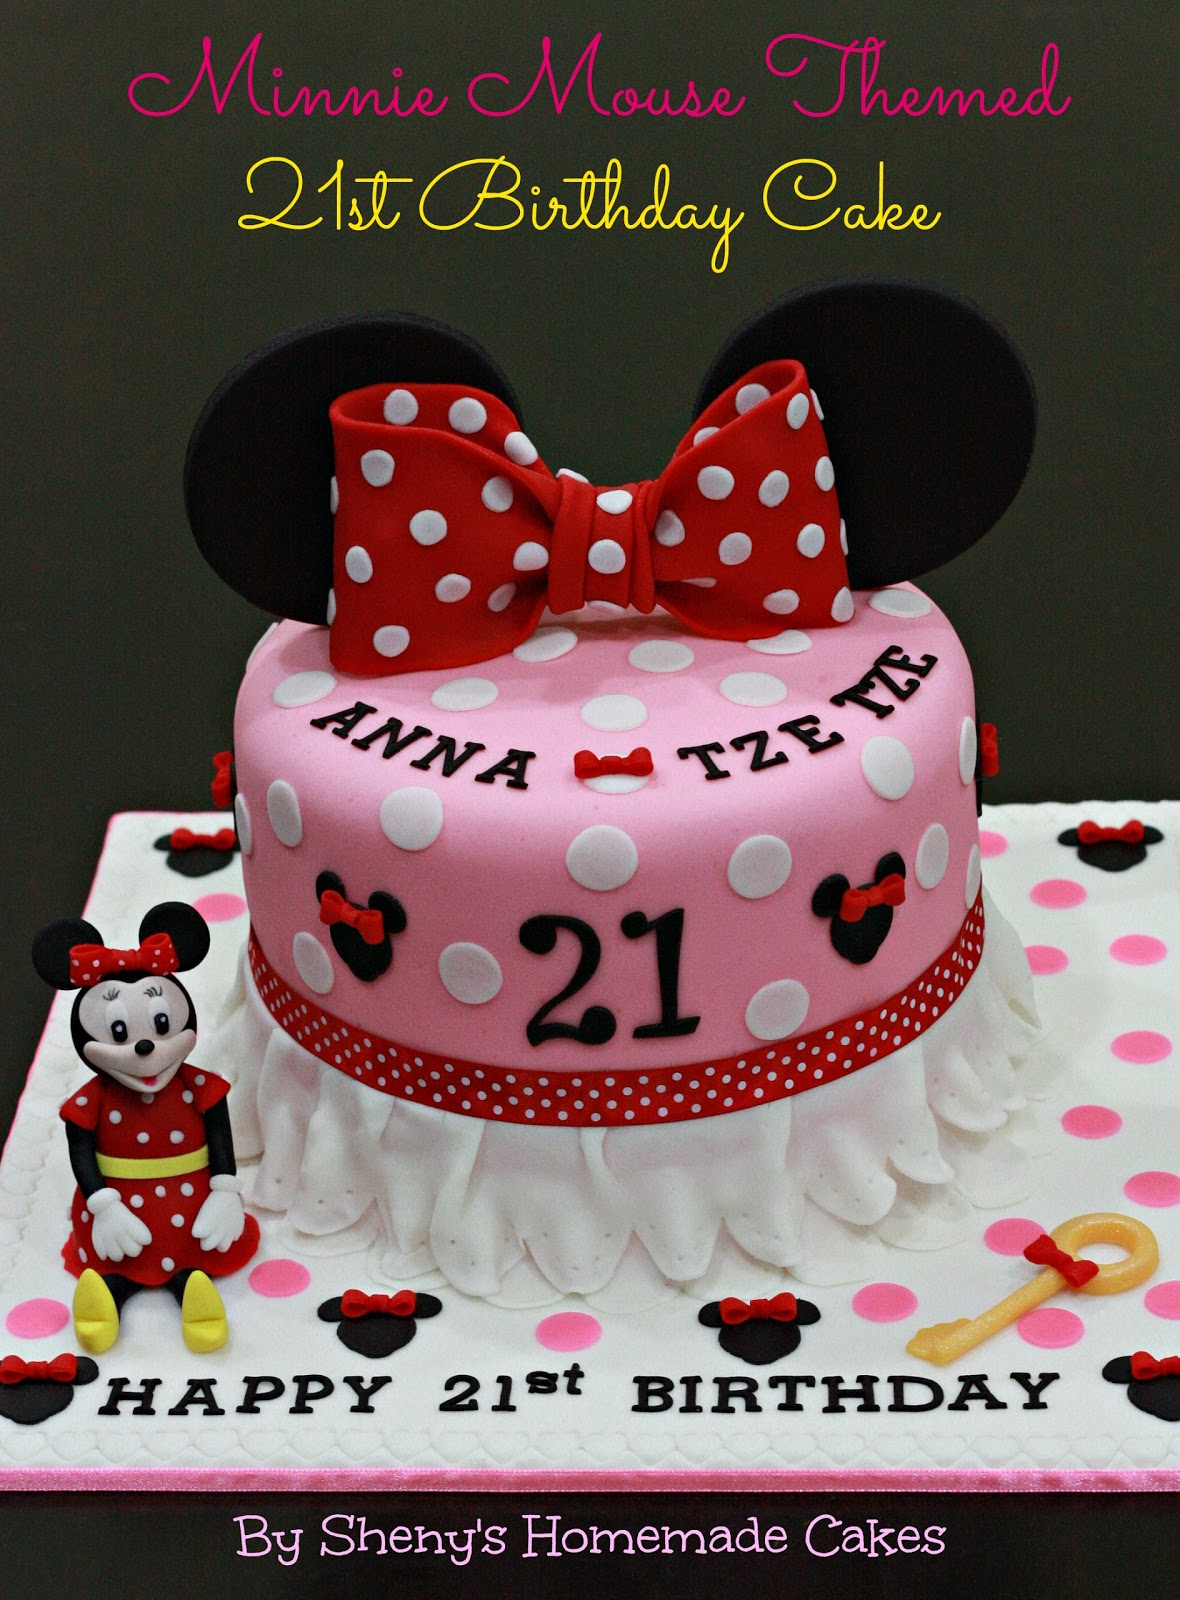 Homemade Minnie Mouse Cake Ideas 73022 Homemade 21st Birth